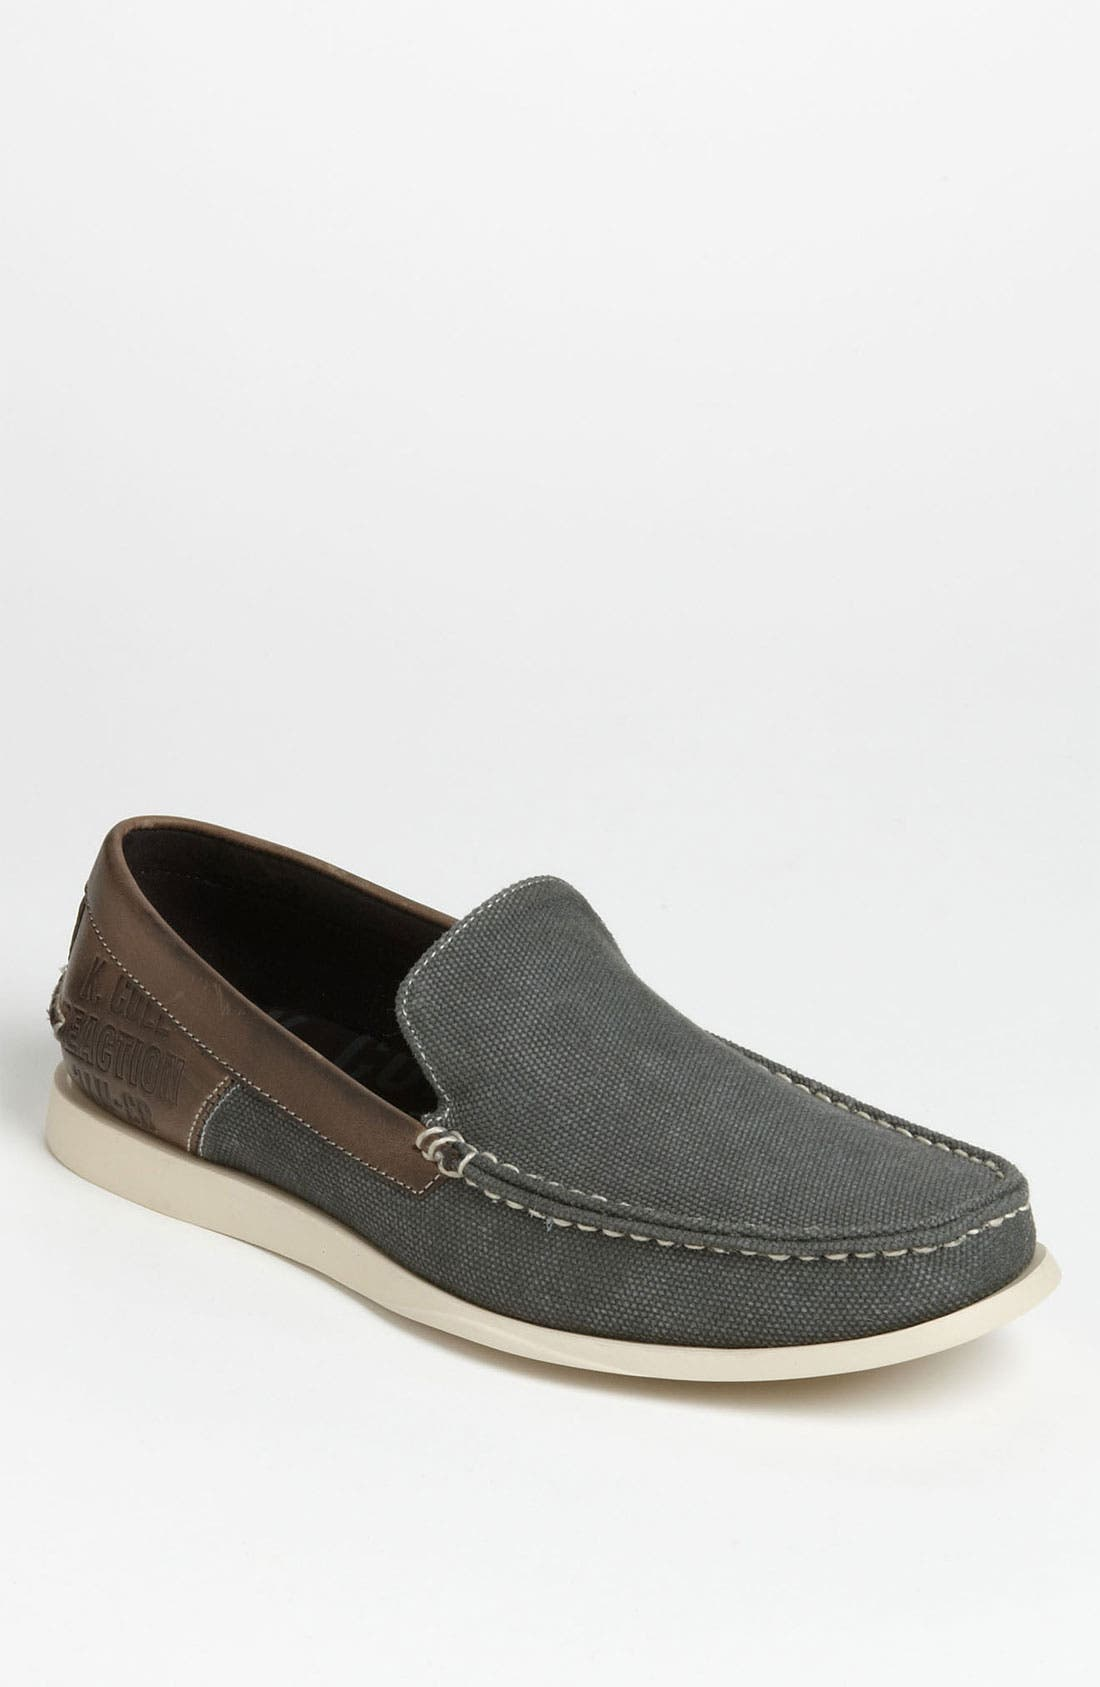 Main Image - Kenneth Cole Reaction 'Drift-Ing' Slip-On